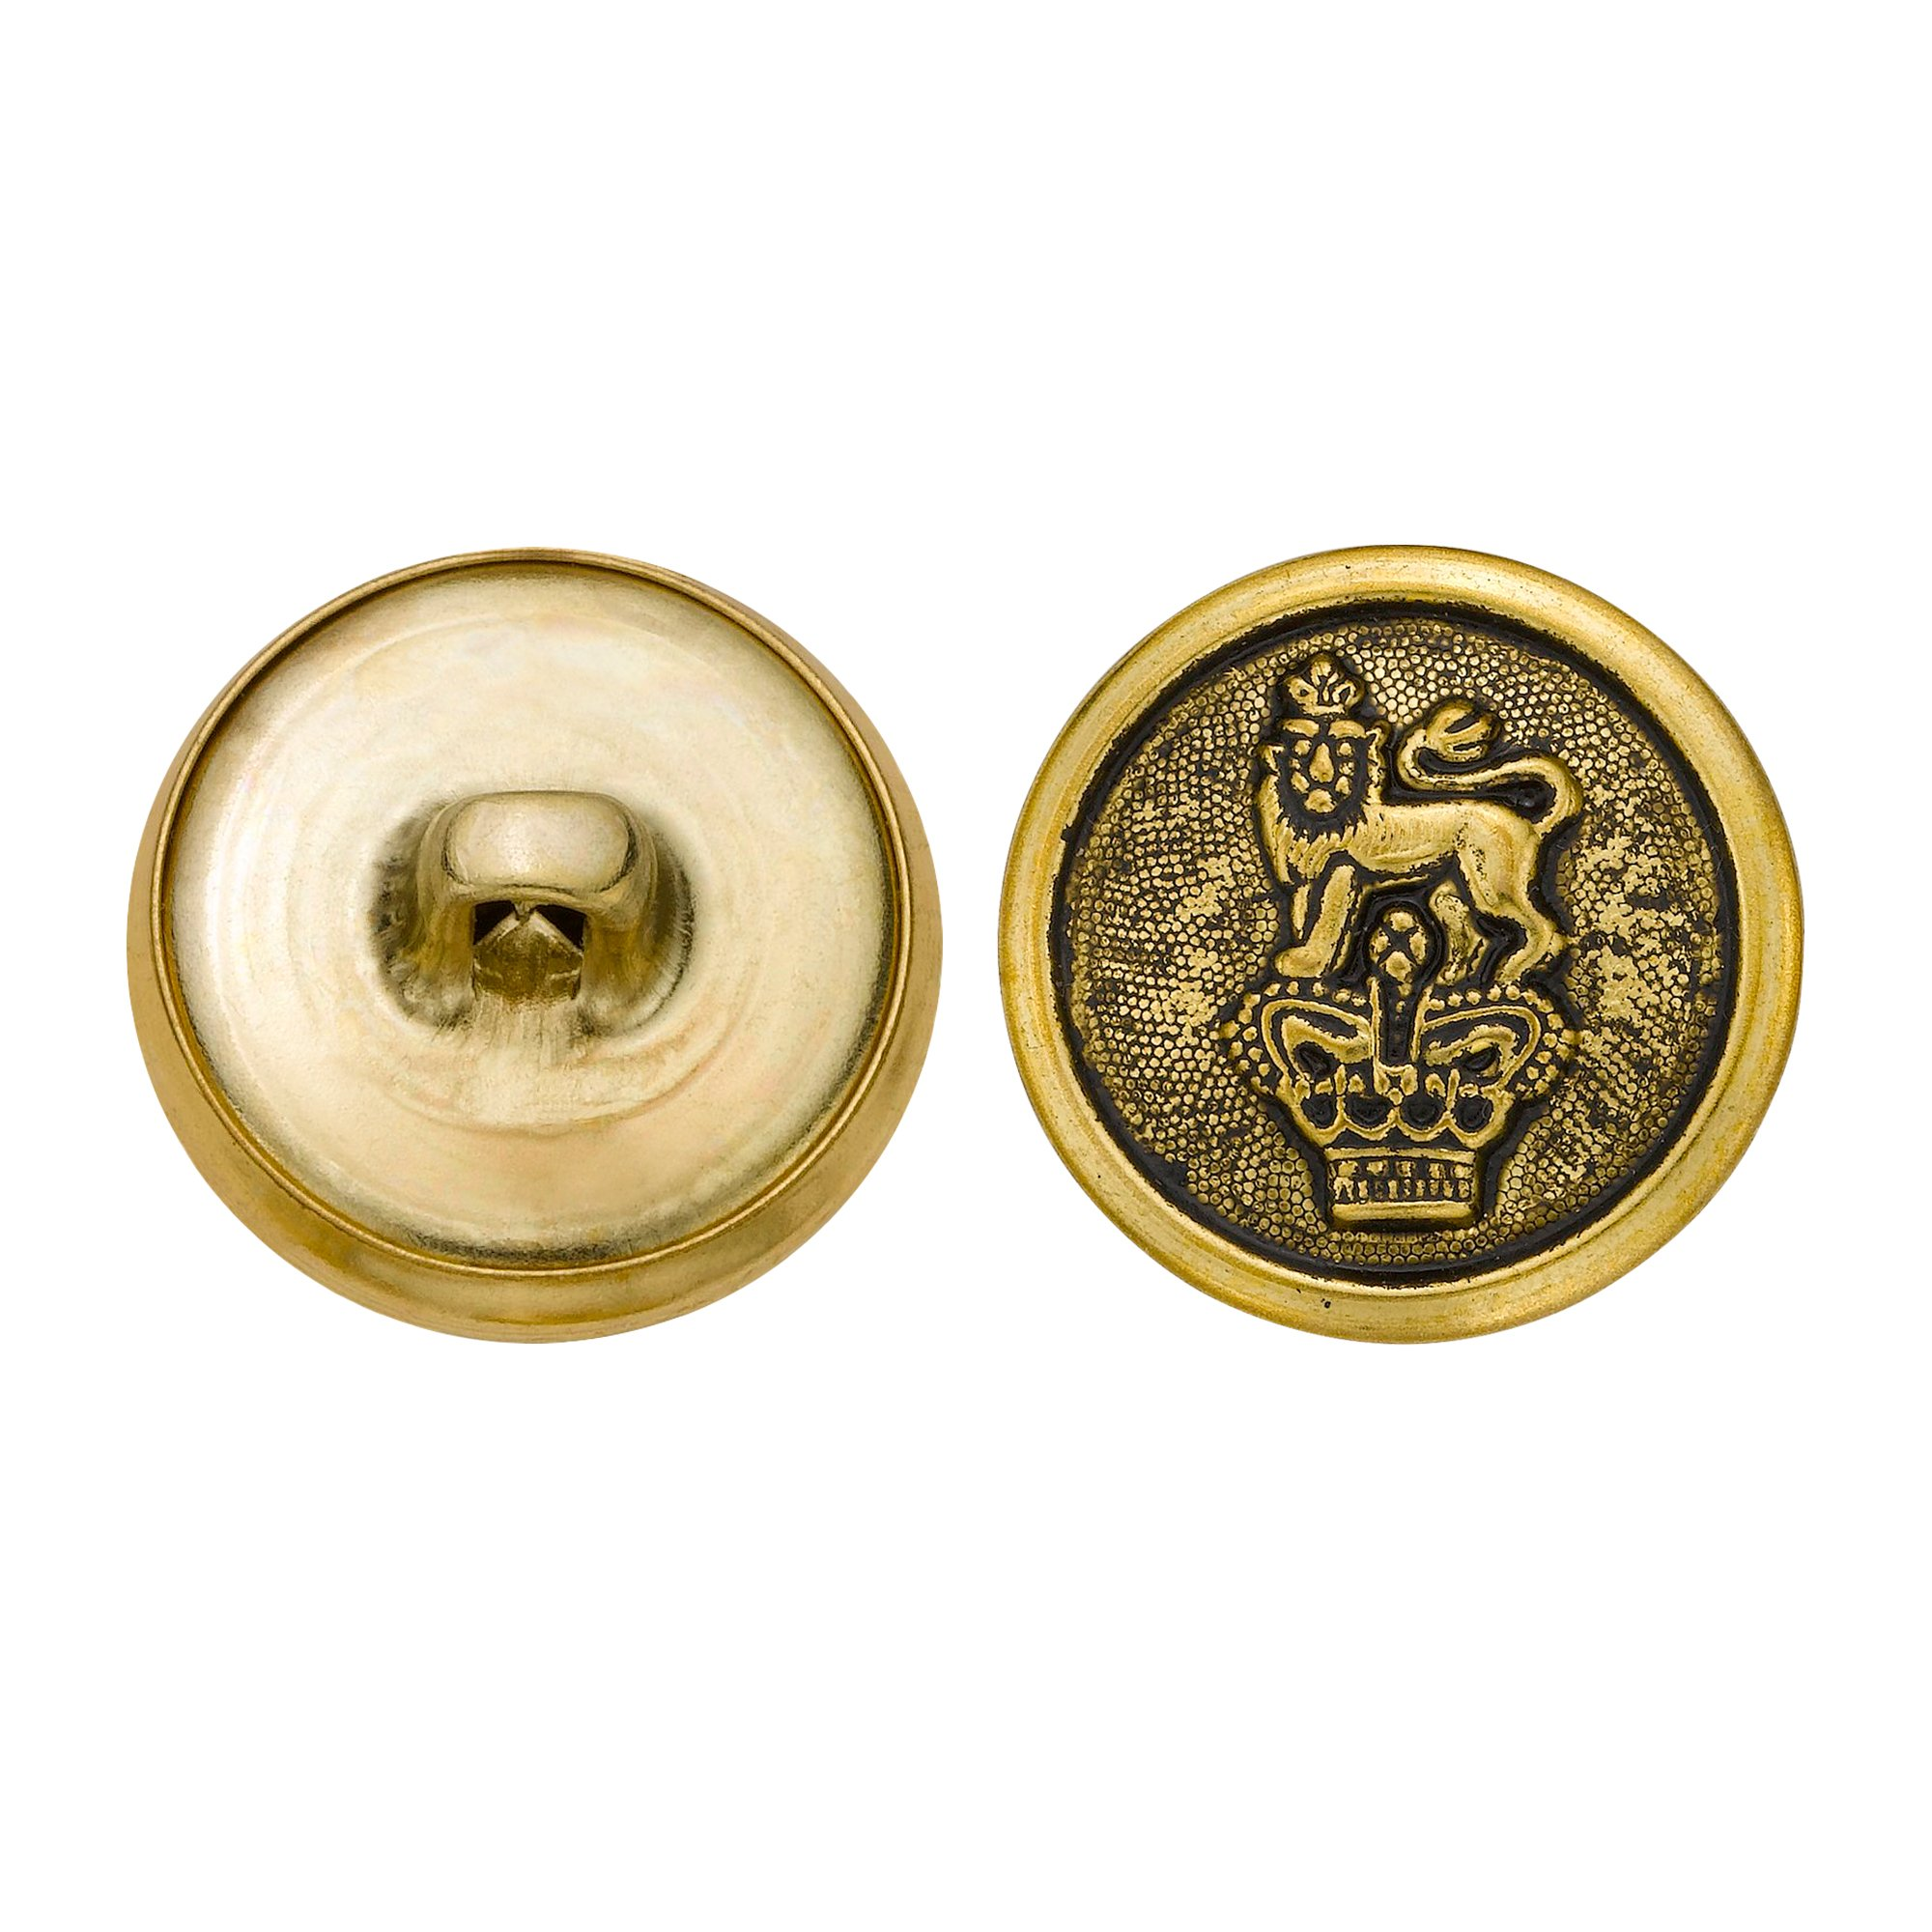 C&C Metal Products 5277 Crowned Lion Metal Button, Size 30 Ligne, Antique Gold, 36-Pack